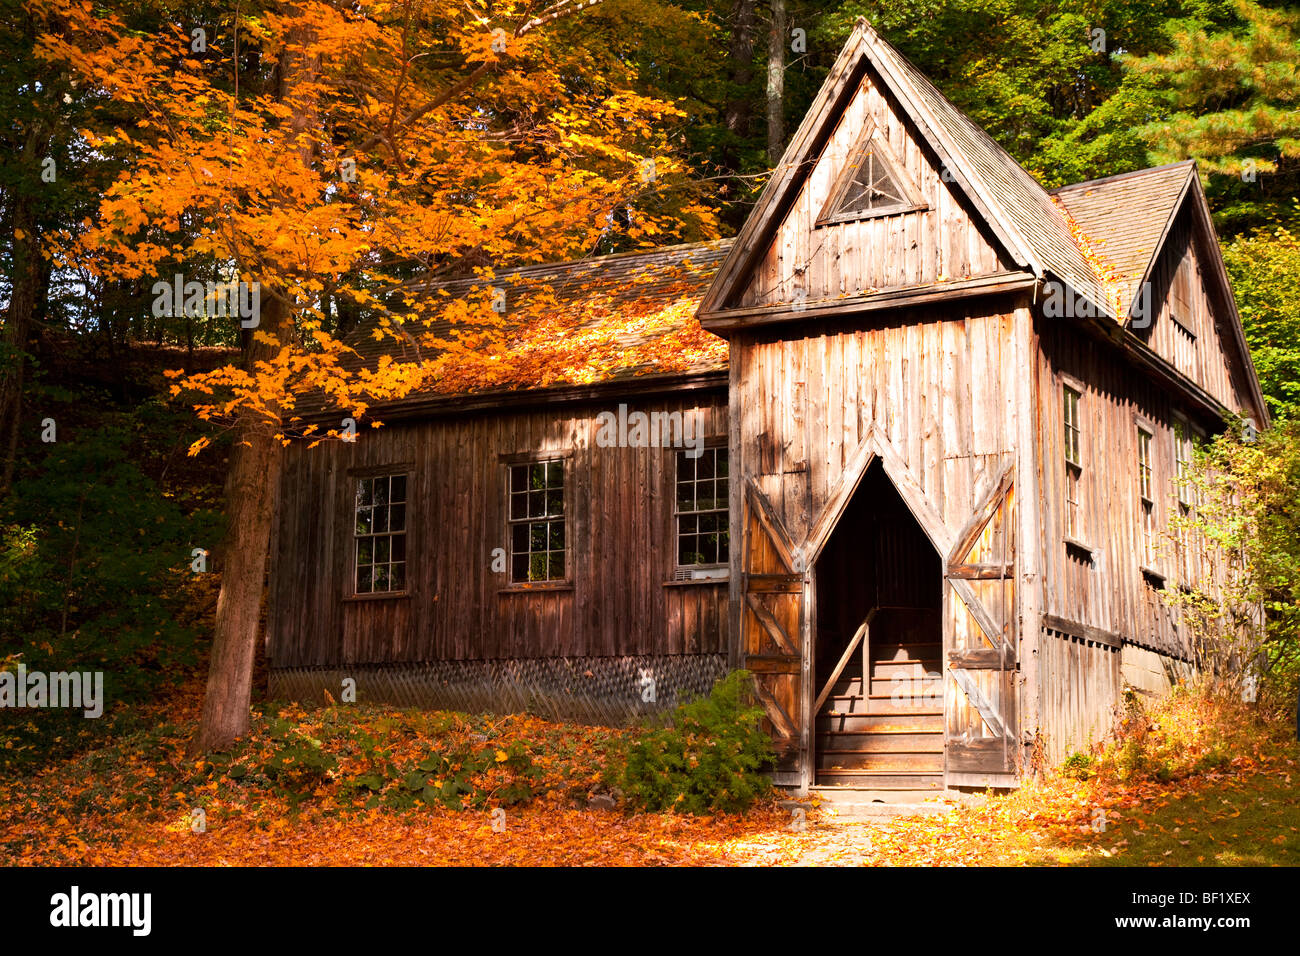 Concord School of Philosophy in Autumn, Concord Massachusetts USA - Stock Image